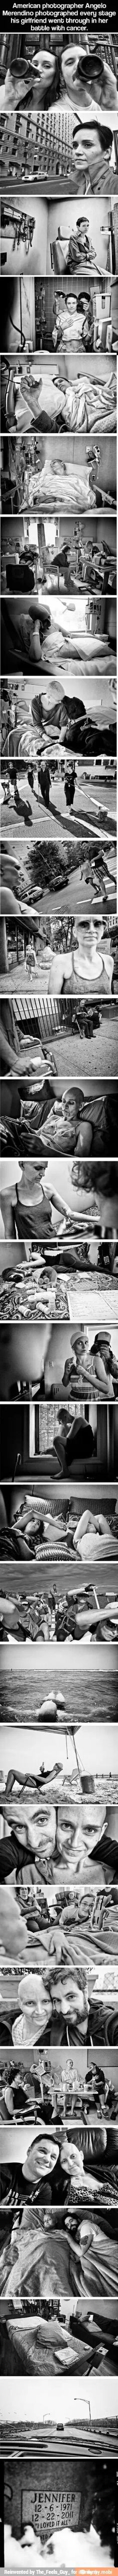 Beautiful Series Most Touching Stories Sad Best Funny Pictures